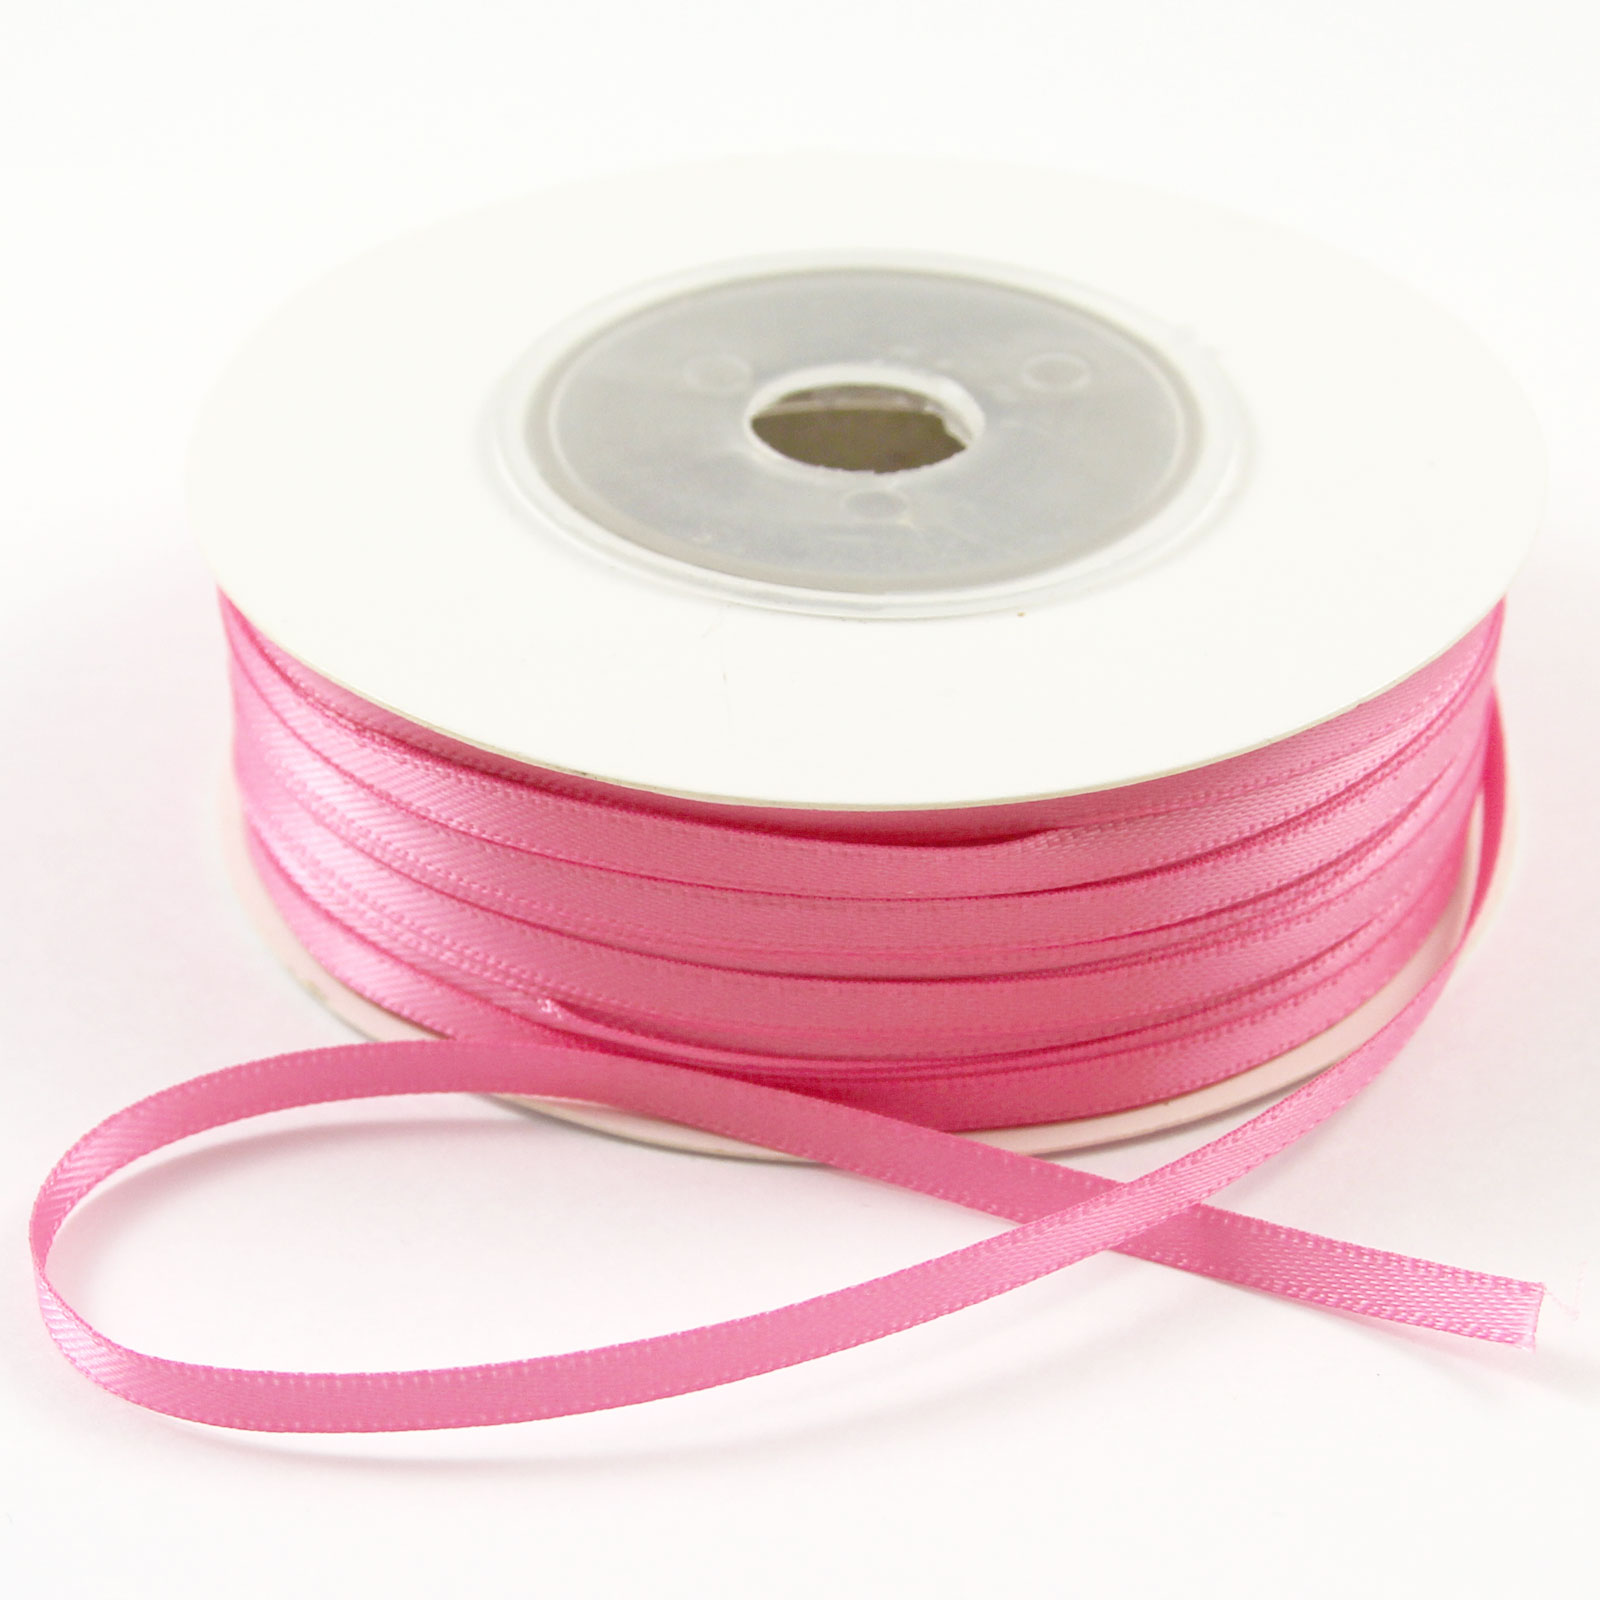 50-Metres-Of-3mm-1-8-DOUBLE-FACED-Sided-SATIN-RIBBON-Reel-Many-Colours